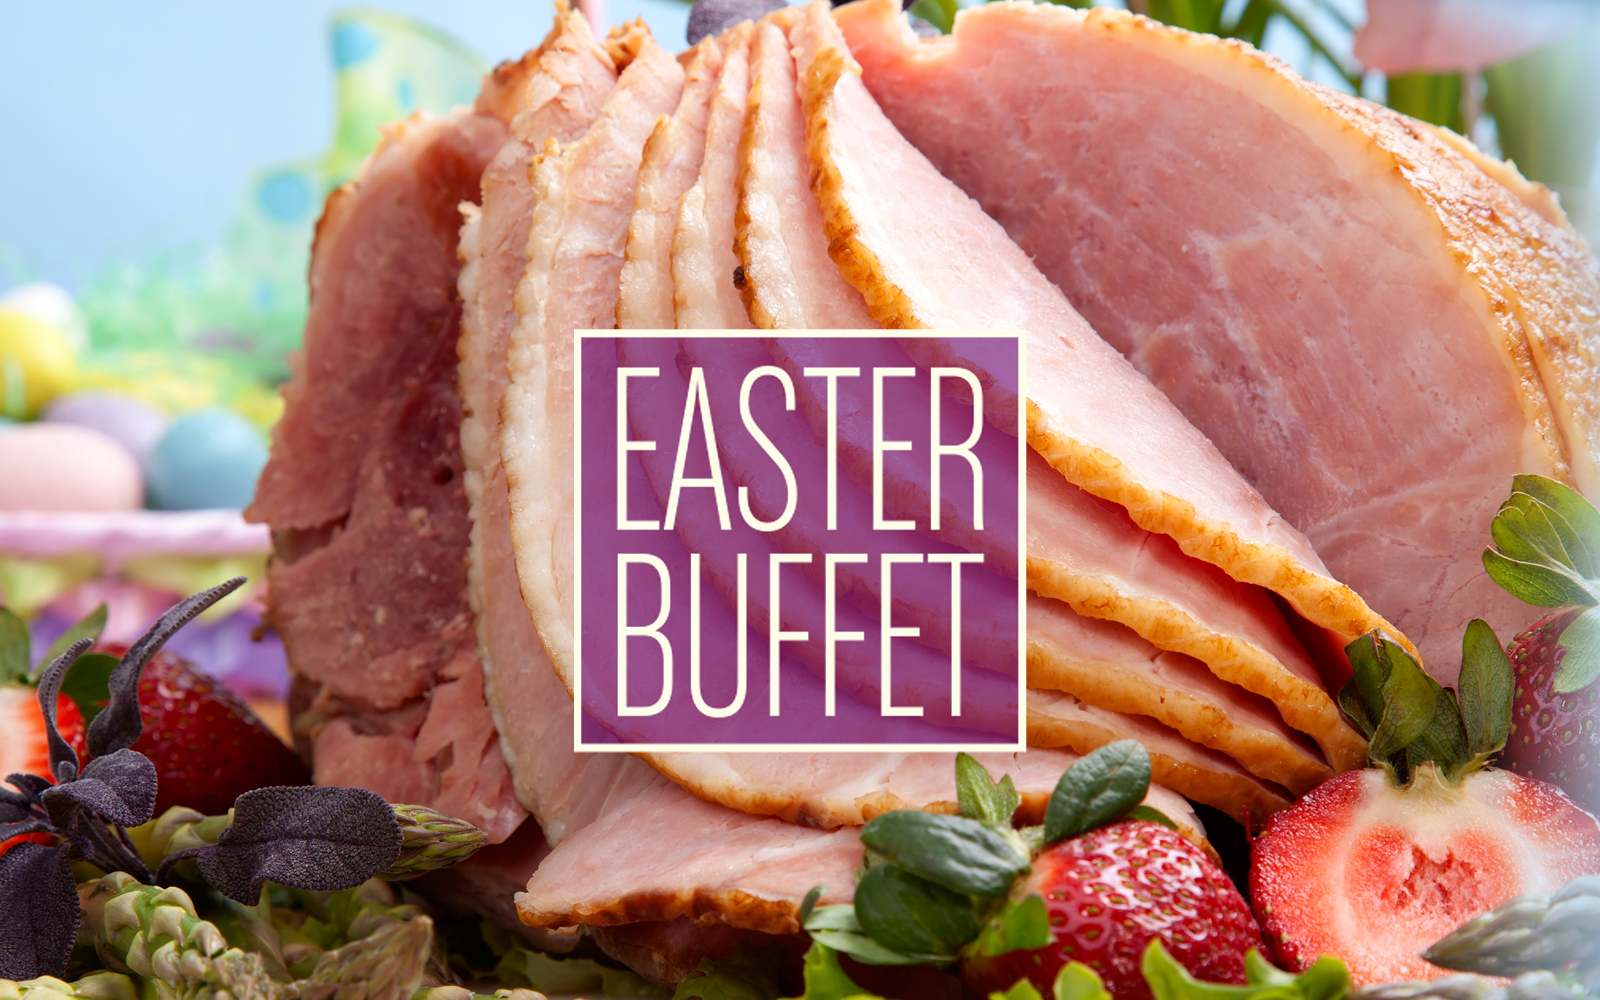 easter buffet cocopah resort rh cocopahresort com